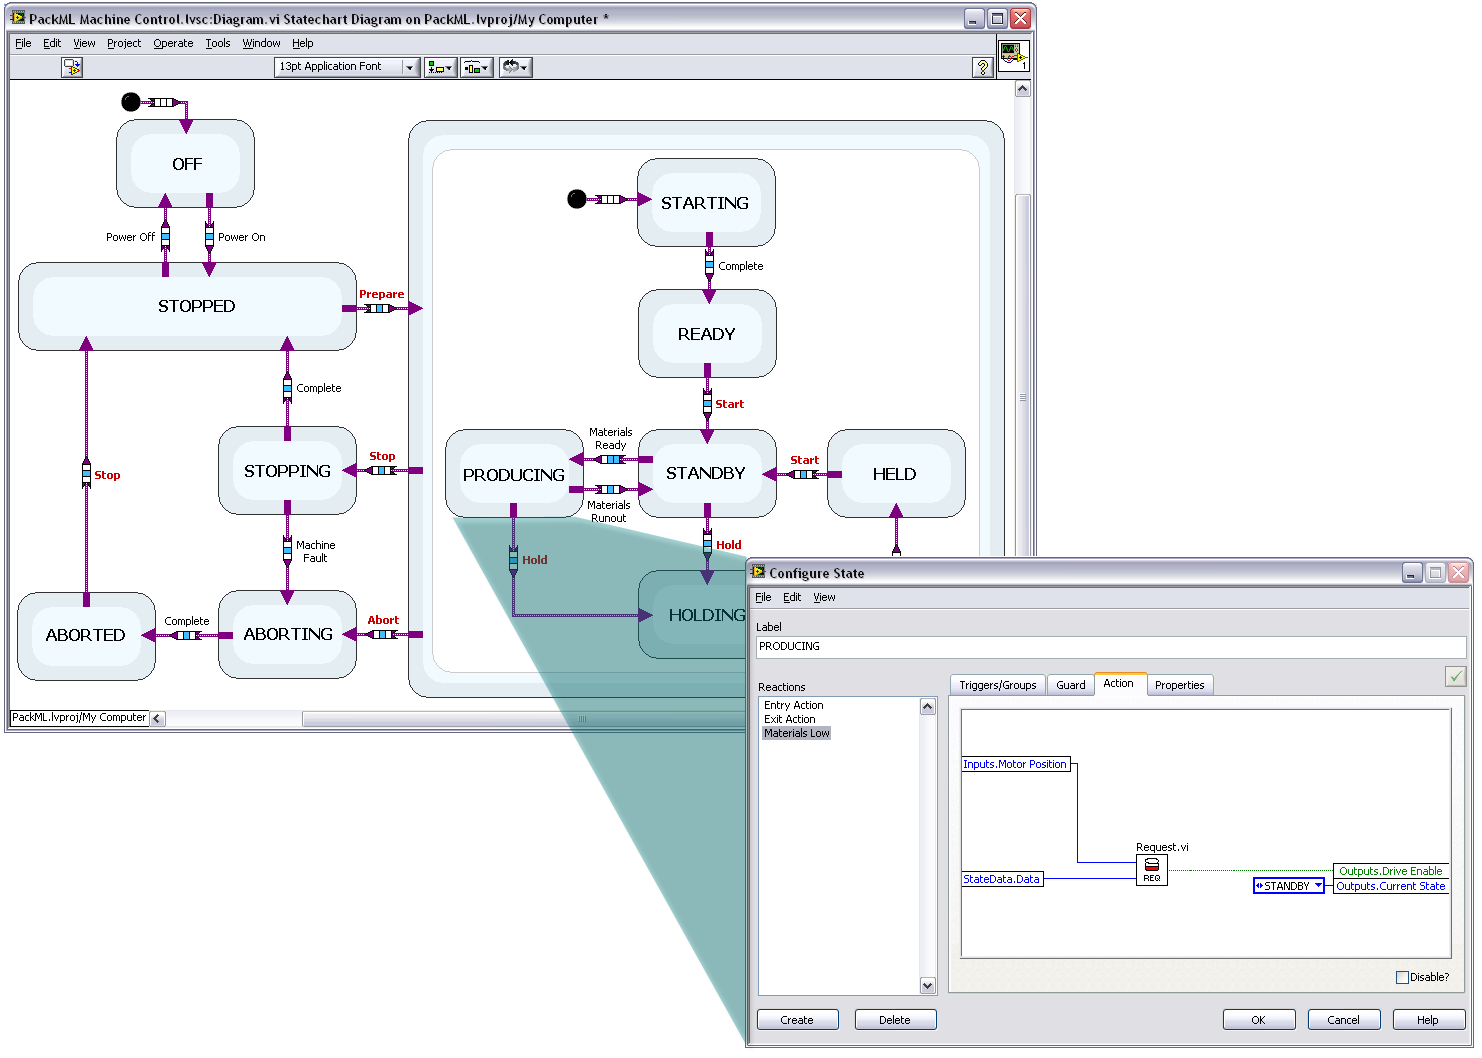 Developing Applications With The Ni Labview Statechart Module Examples Of State Transition Diagrams 2 Using Statecharts